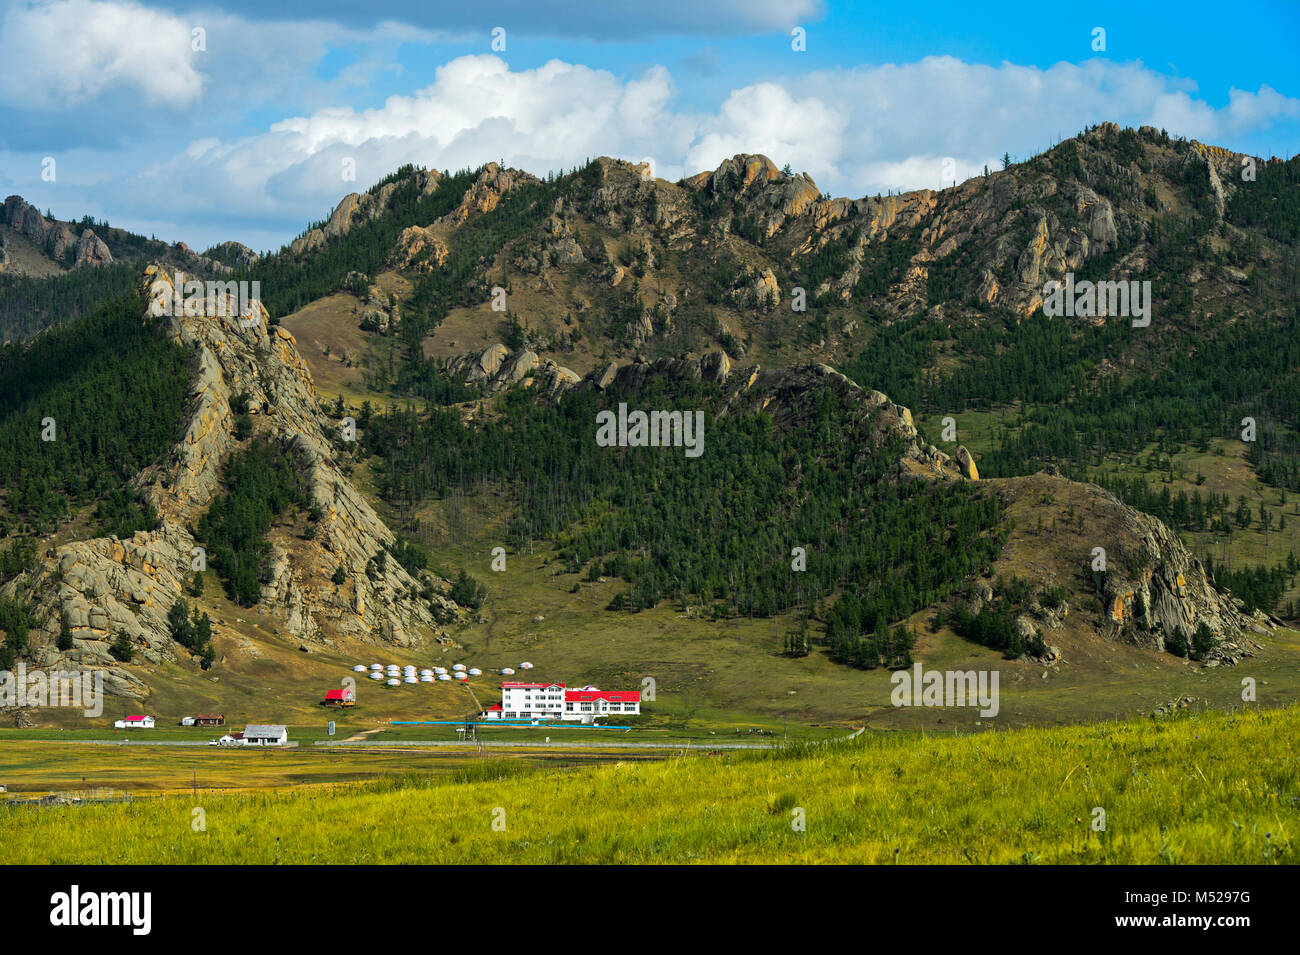 Tourist accommodation with yurts in Gorkhi-Terelj National Park,Mongolia - Stock Image